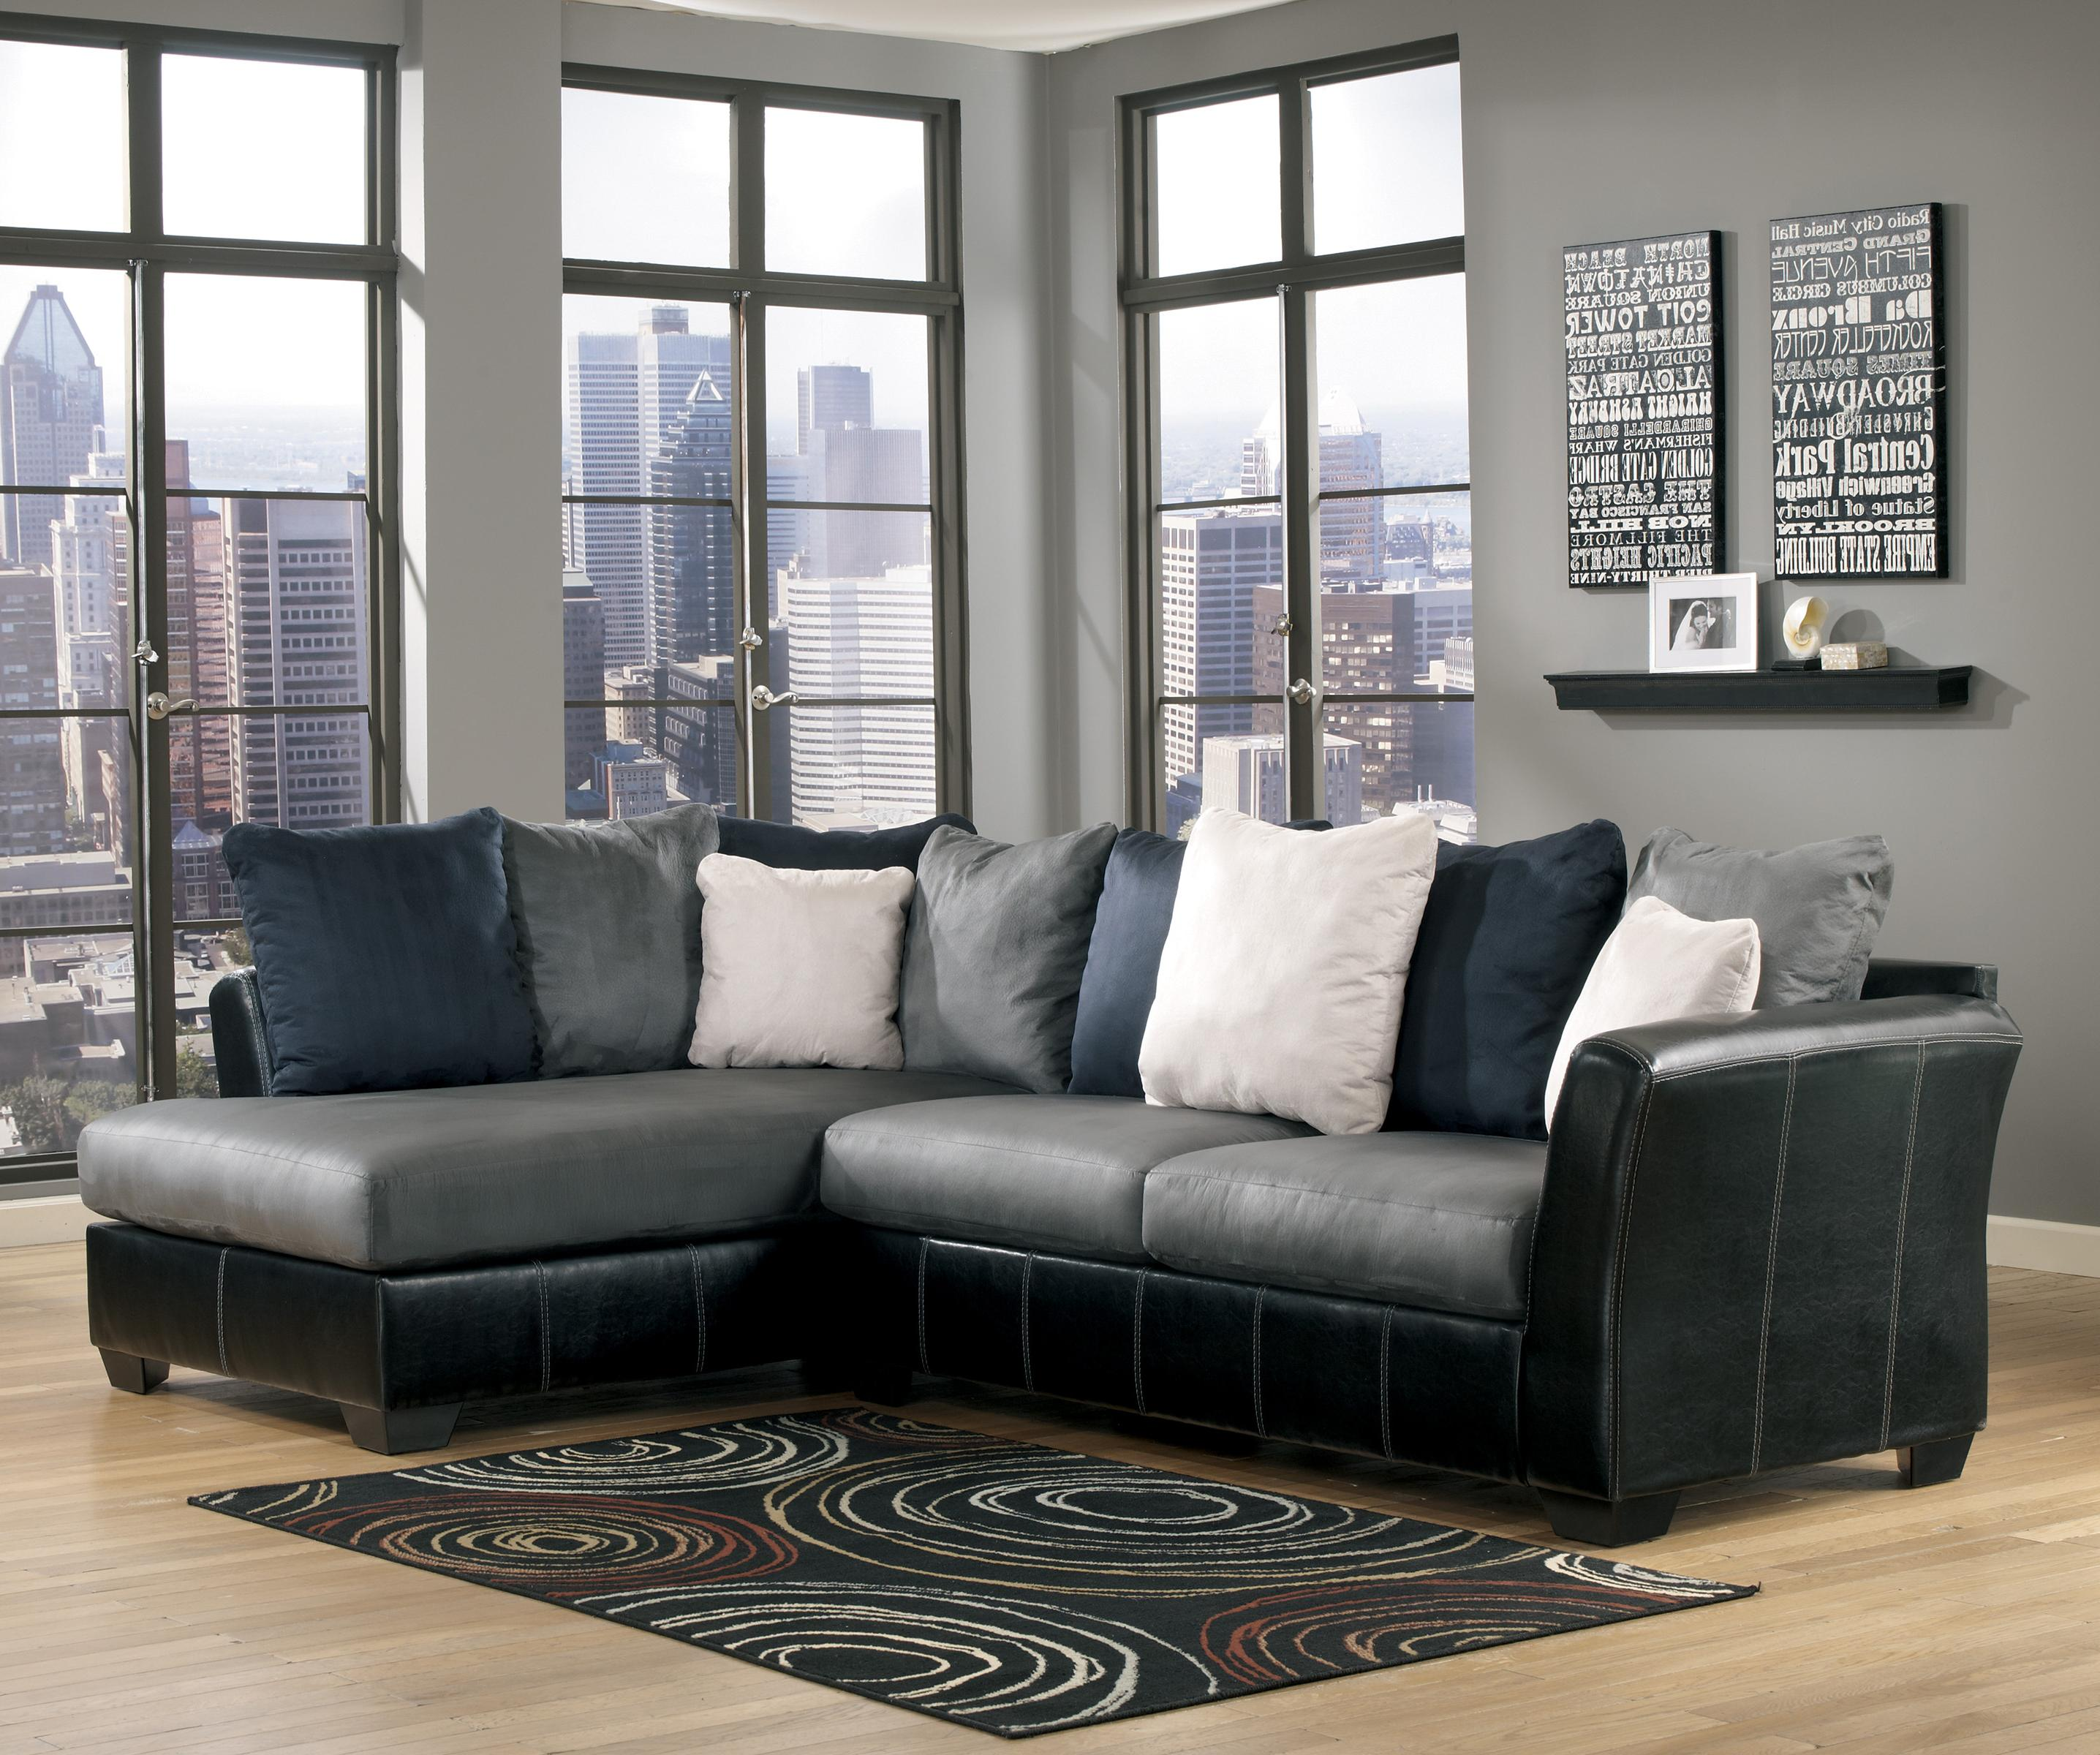 Benchcraft Masoli Cobblestone 2 Piece Sectional With